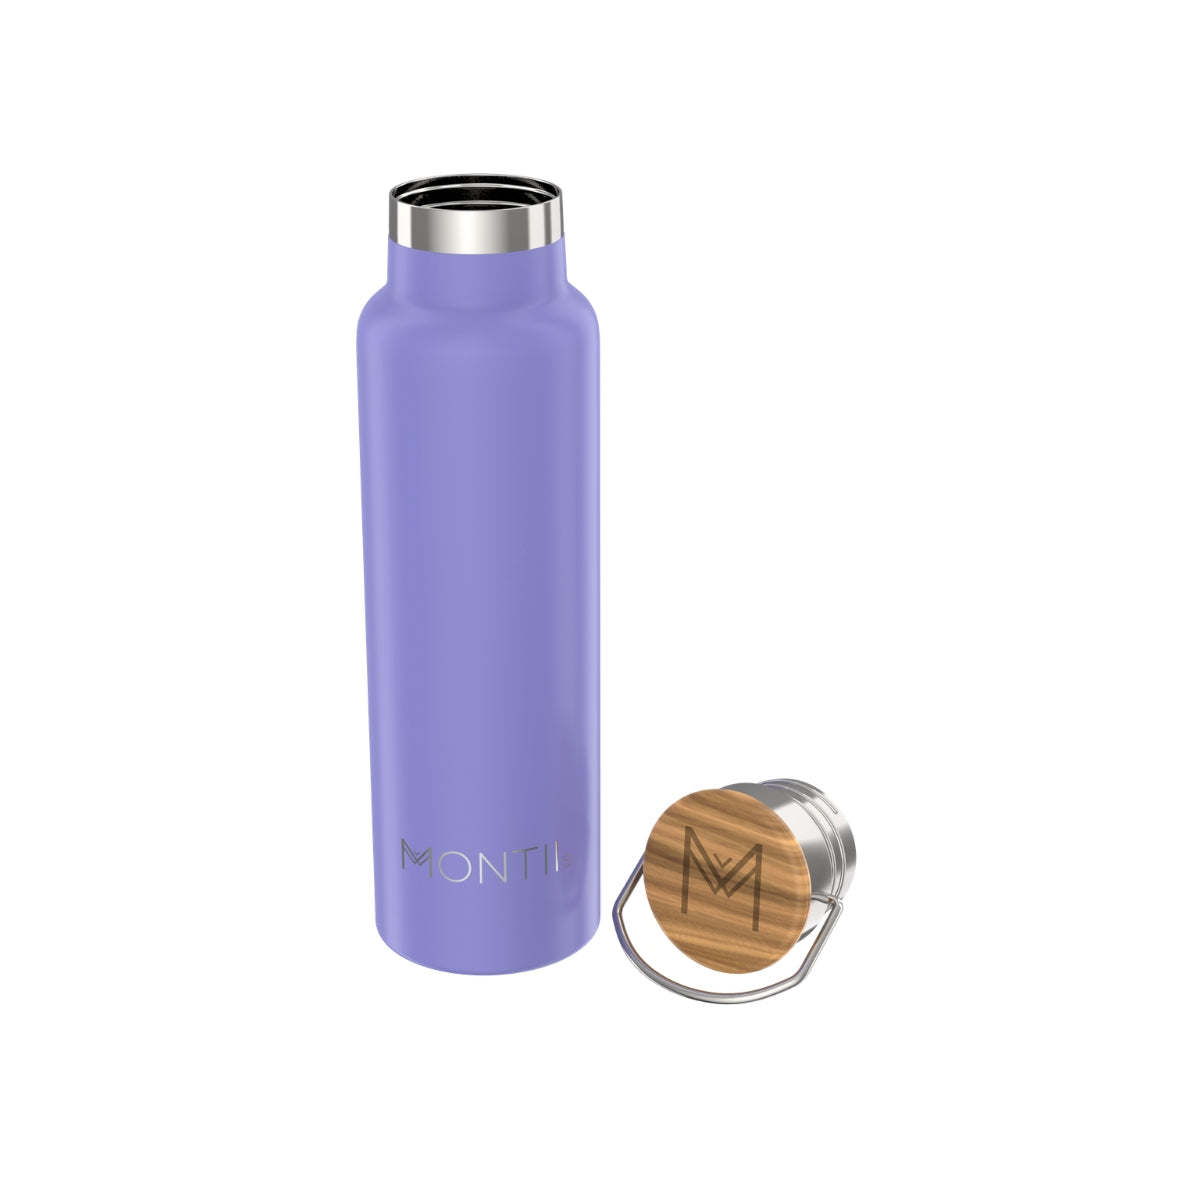 MontiiCo Original Drink Bottle - Violet